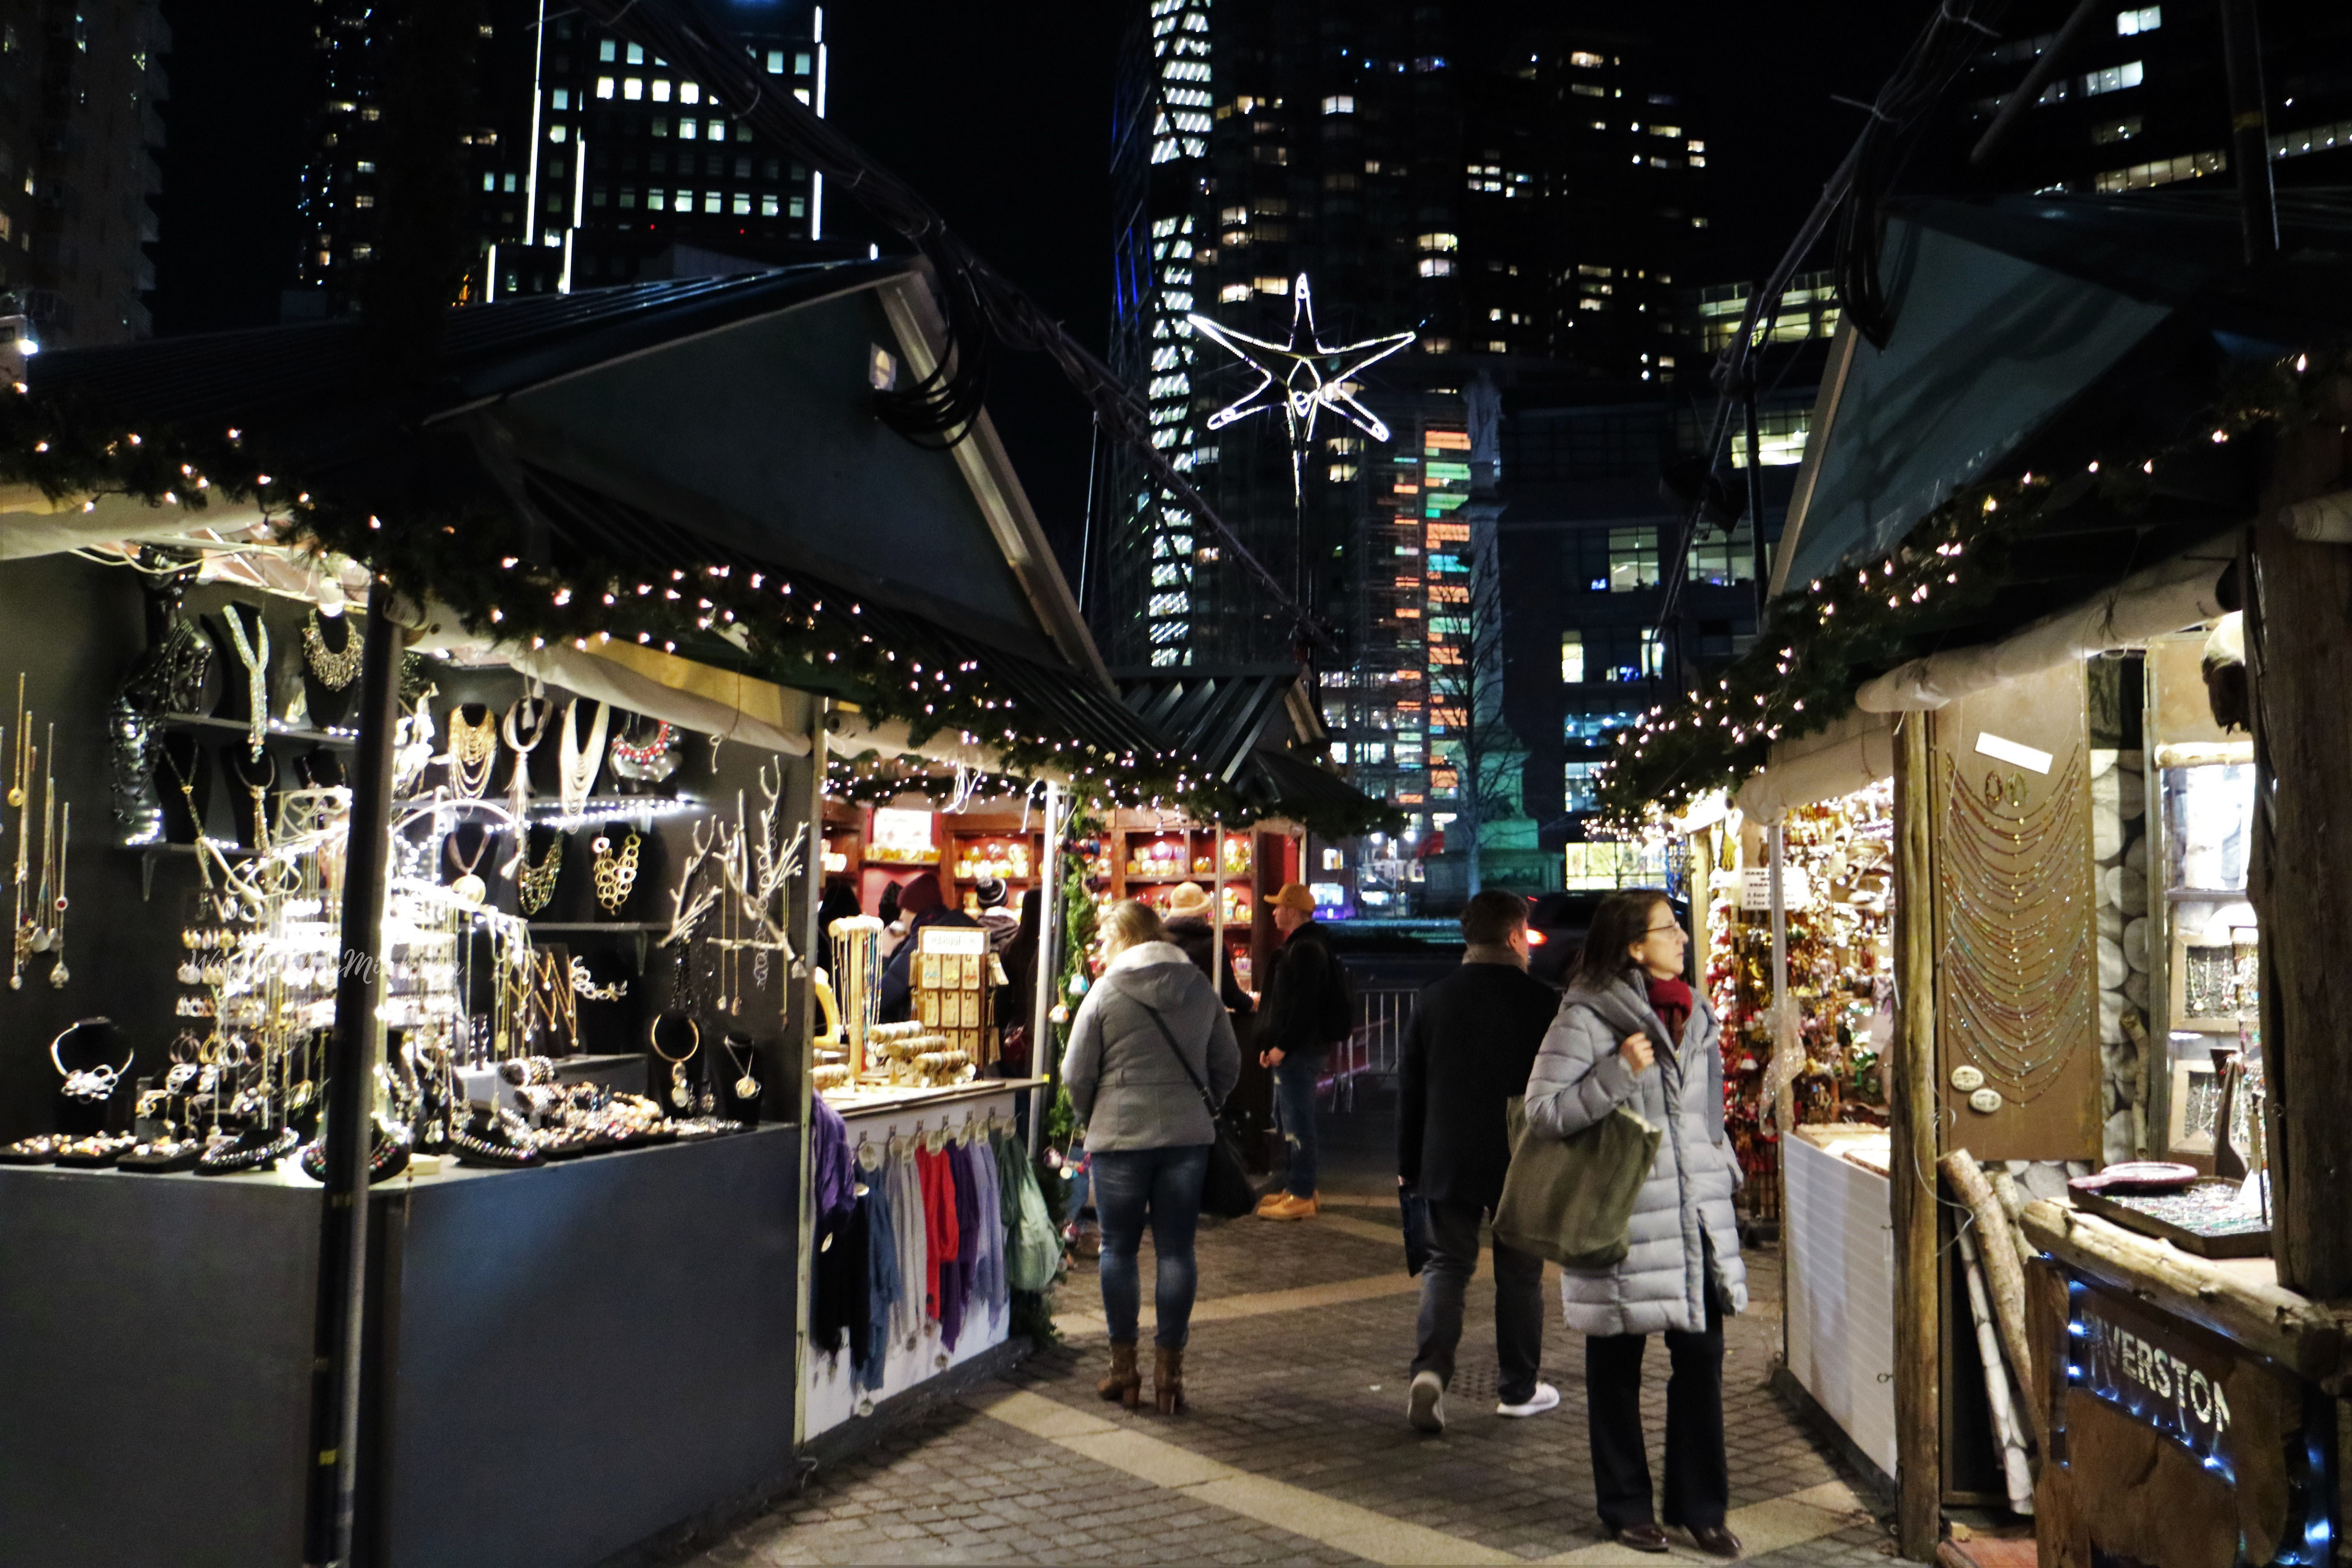 Columbus Circle Christmas market, Manhattan